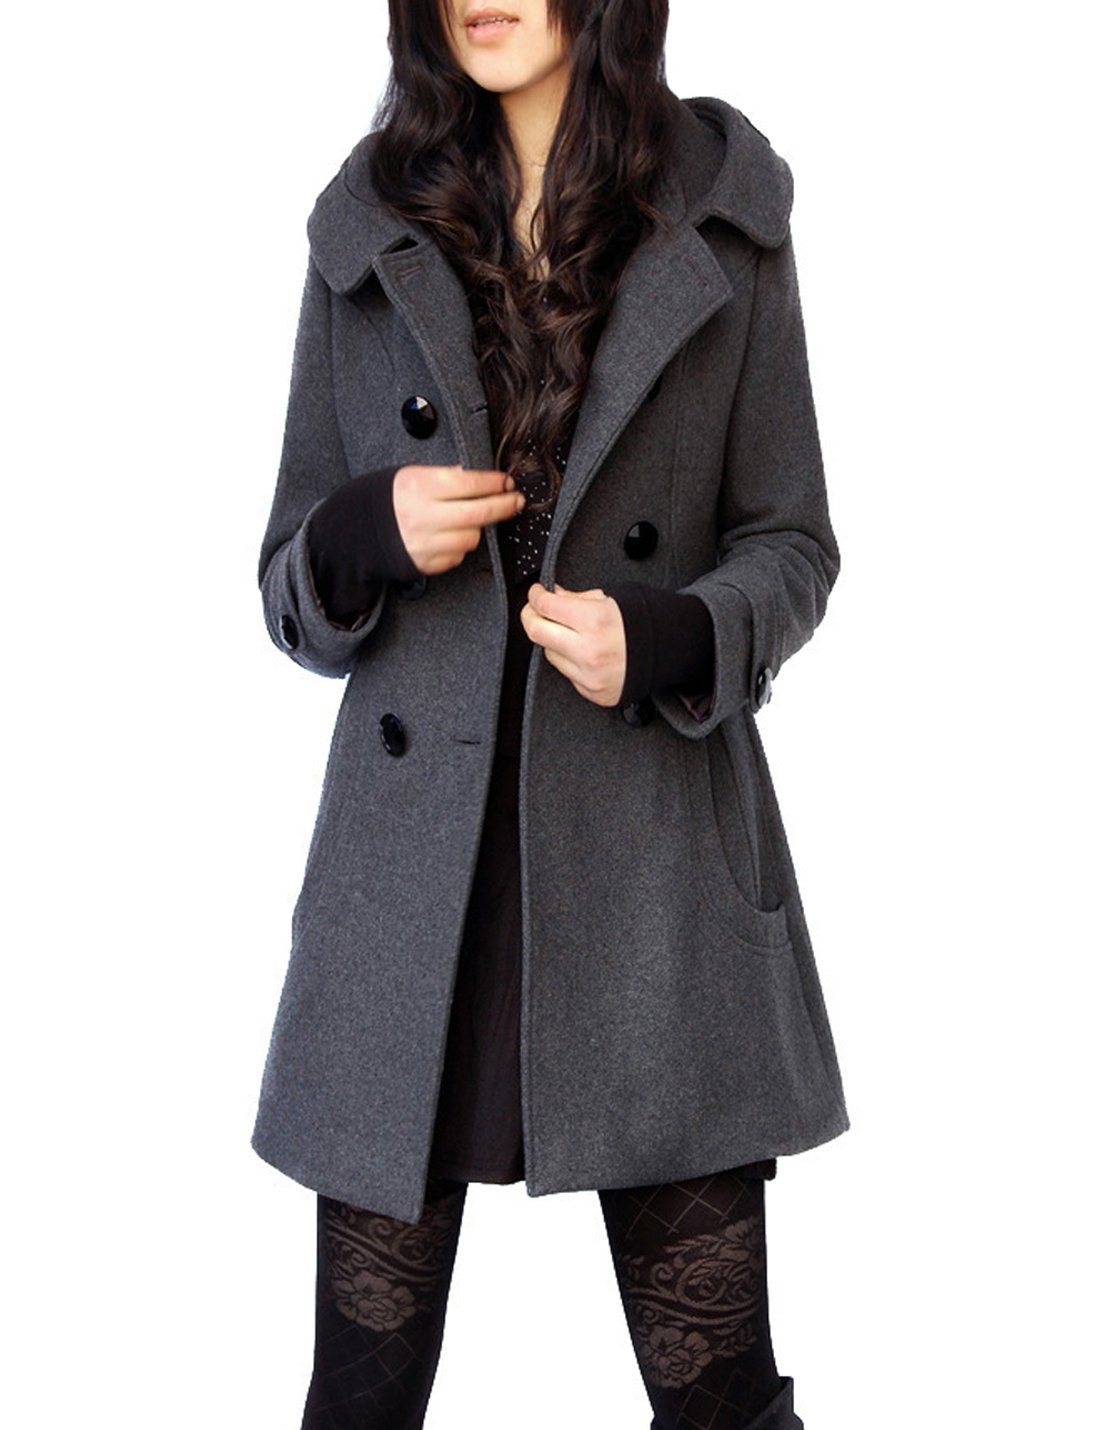 Tanming Women's Winter Double Breasted Wool Blend Long Pea Coat with Hood (Medium, Grey Cotton) by Tanming